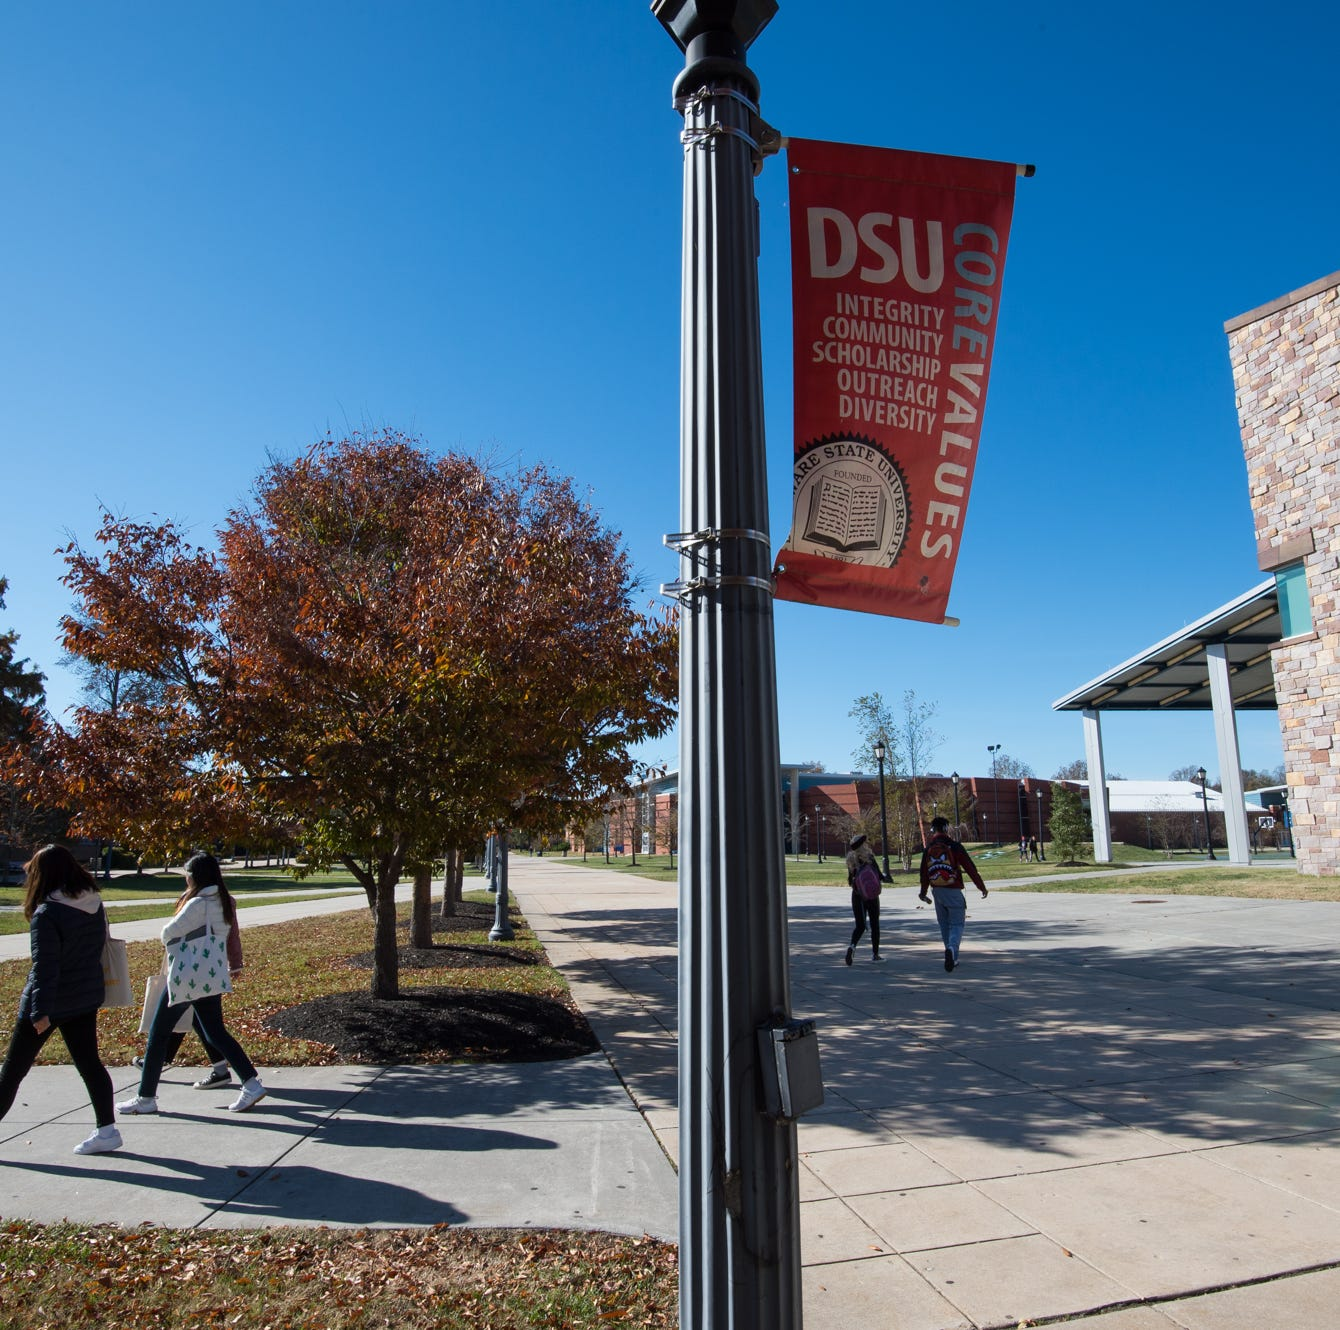 Accused co-conspirator in Delaware State University bribery case indicted